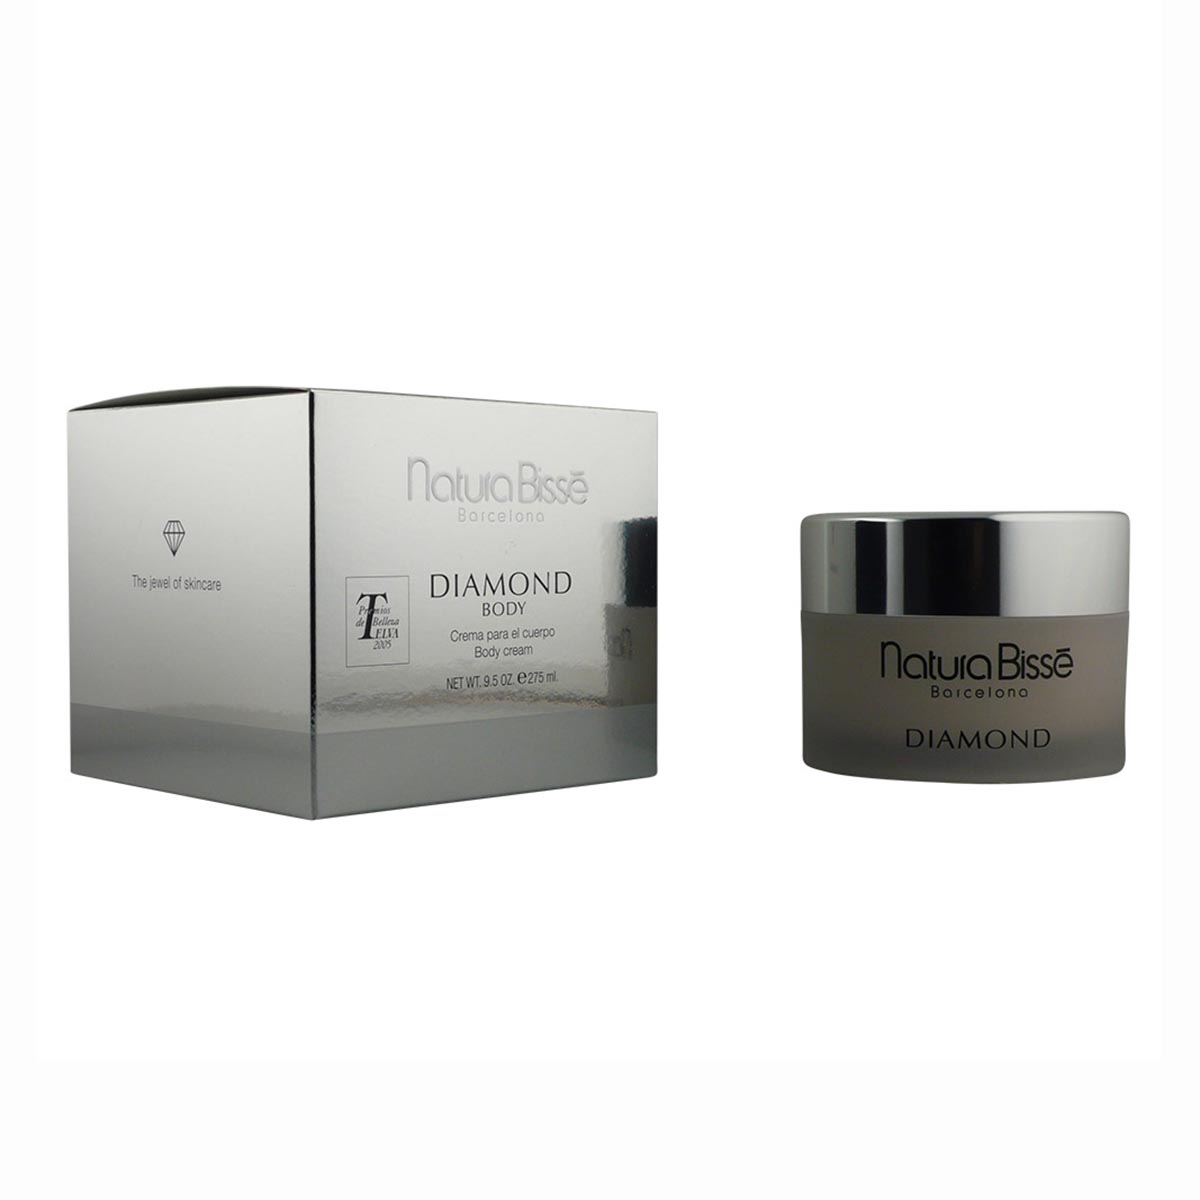 Natura bisse diamond body crema 275ml